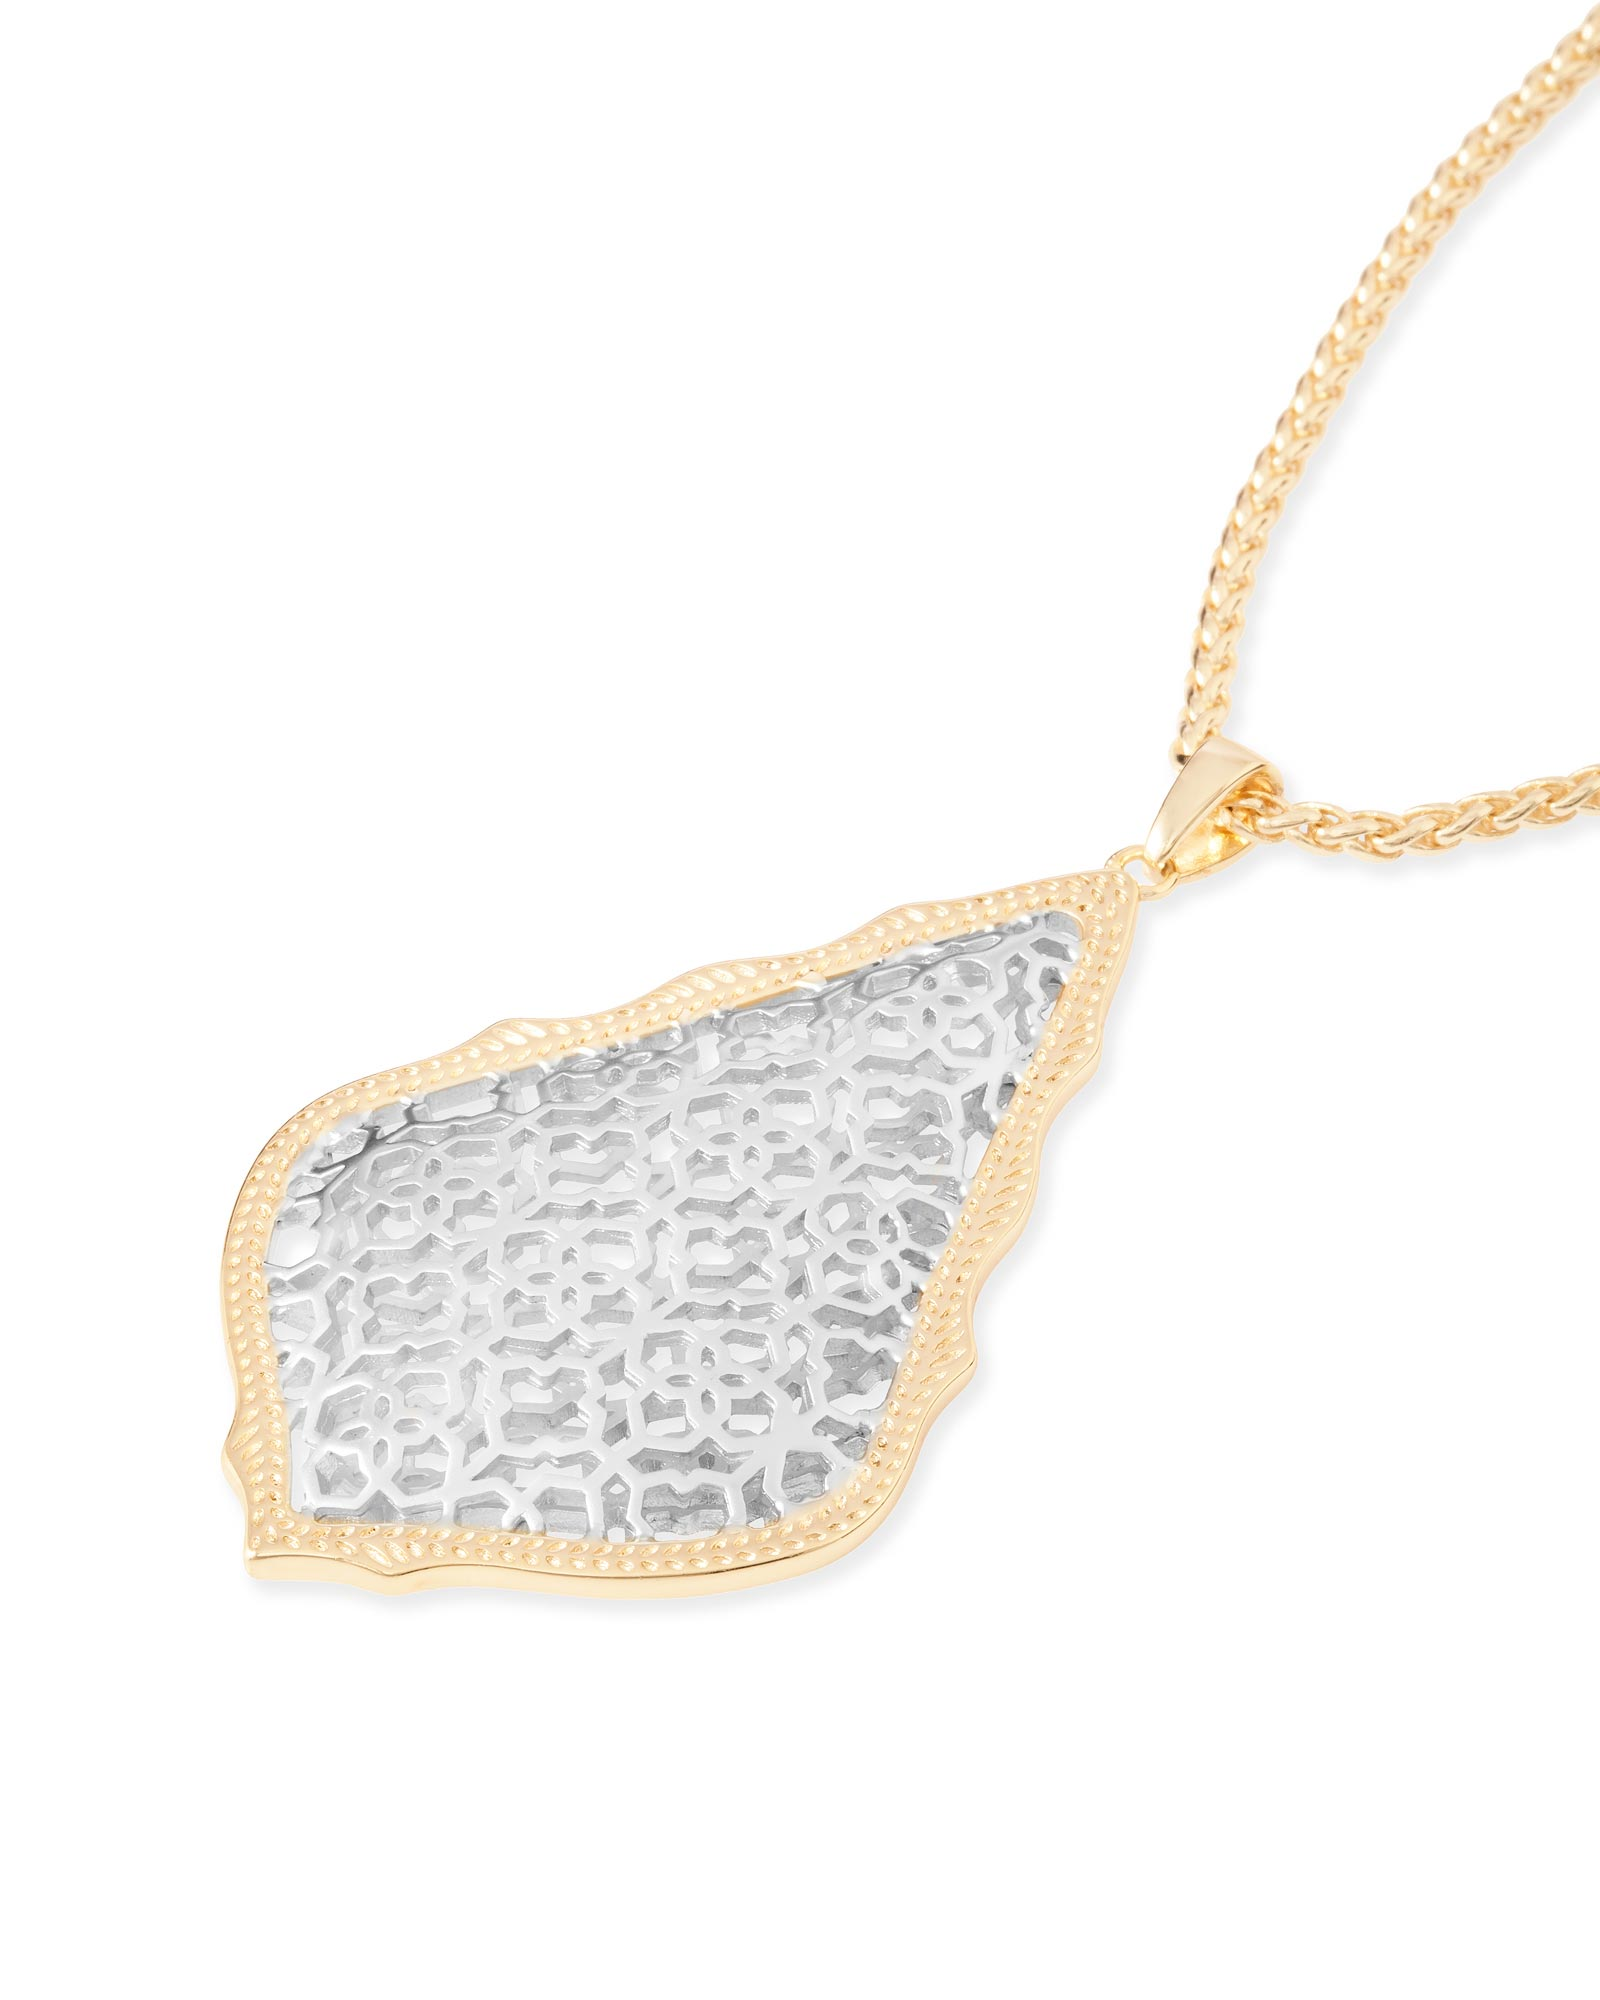 Aiden Gold Long Pendant Necklace in Silver Filigree